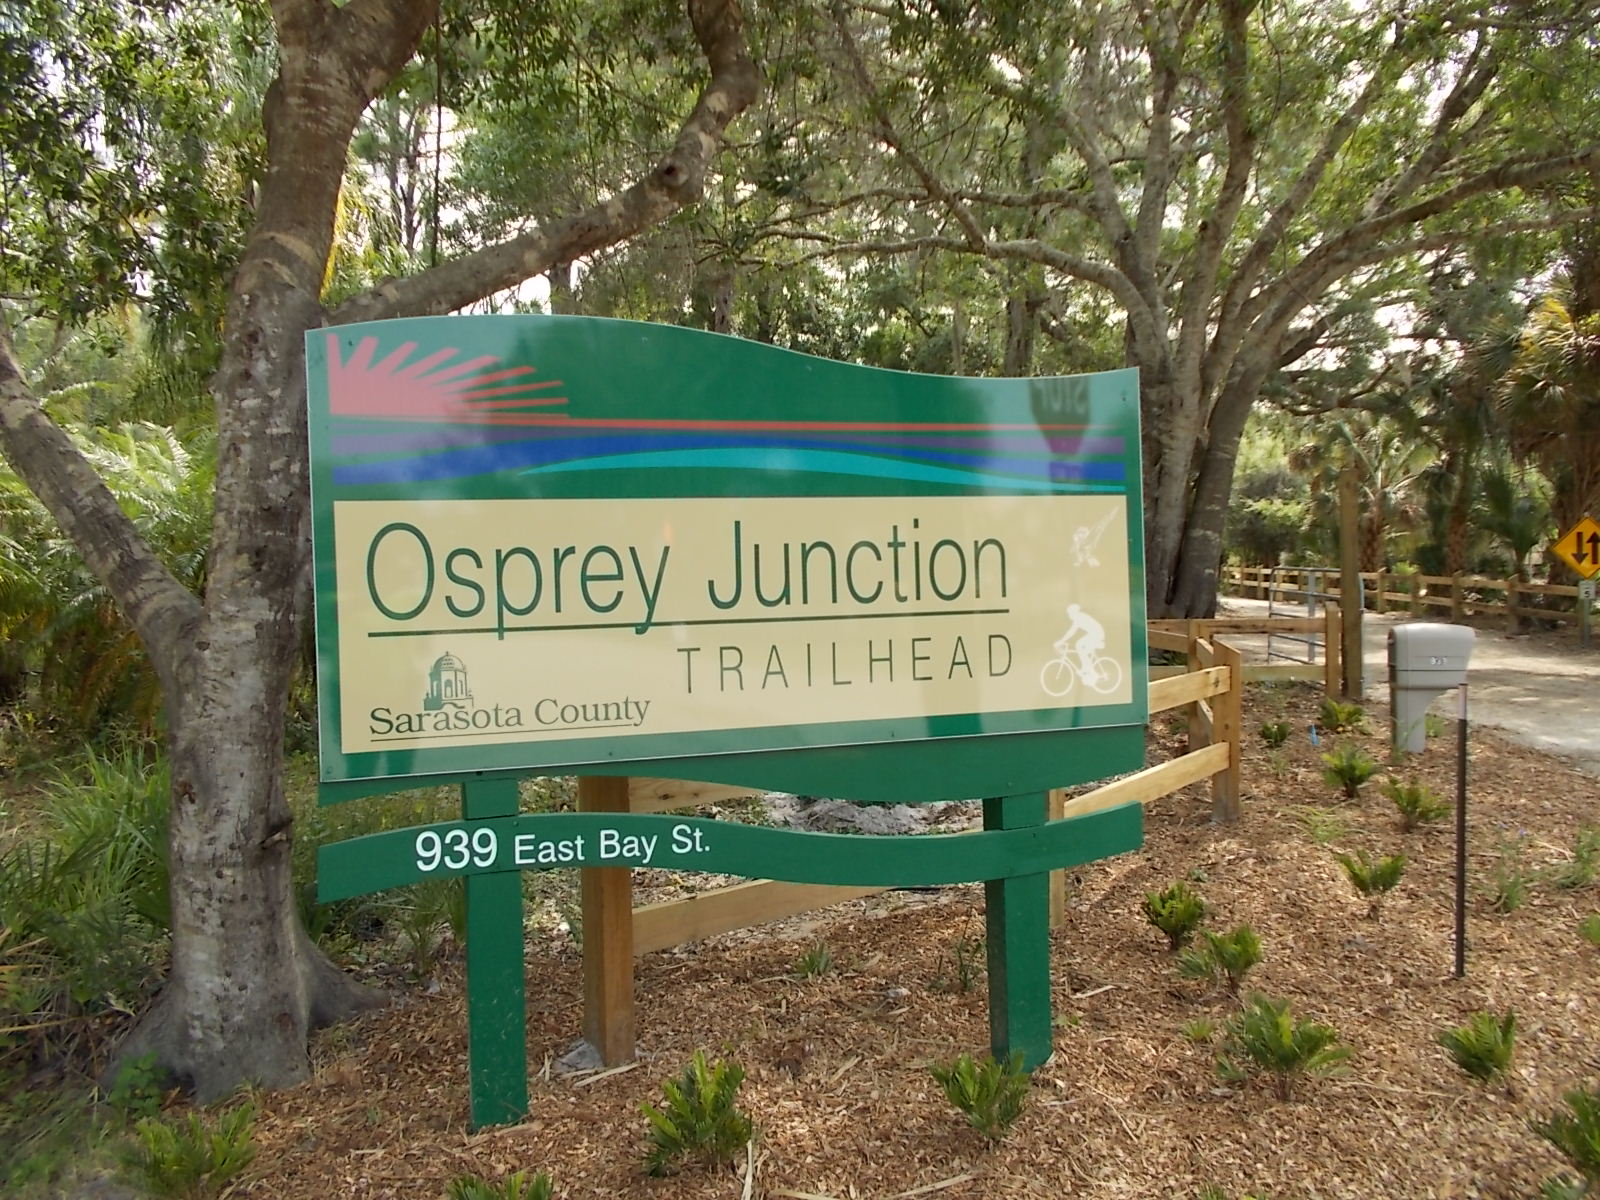 Enterance sign for the Osprey Junction trail